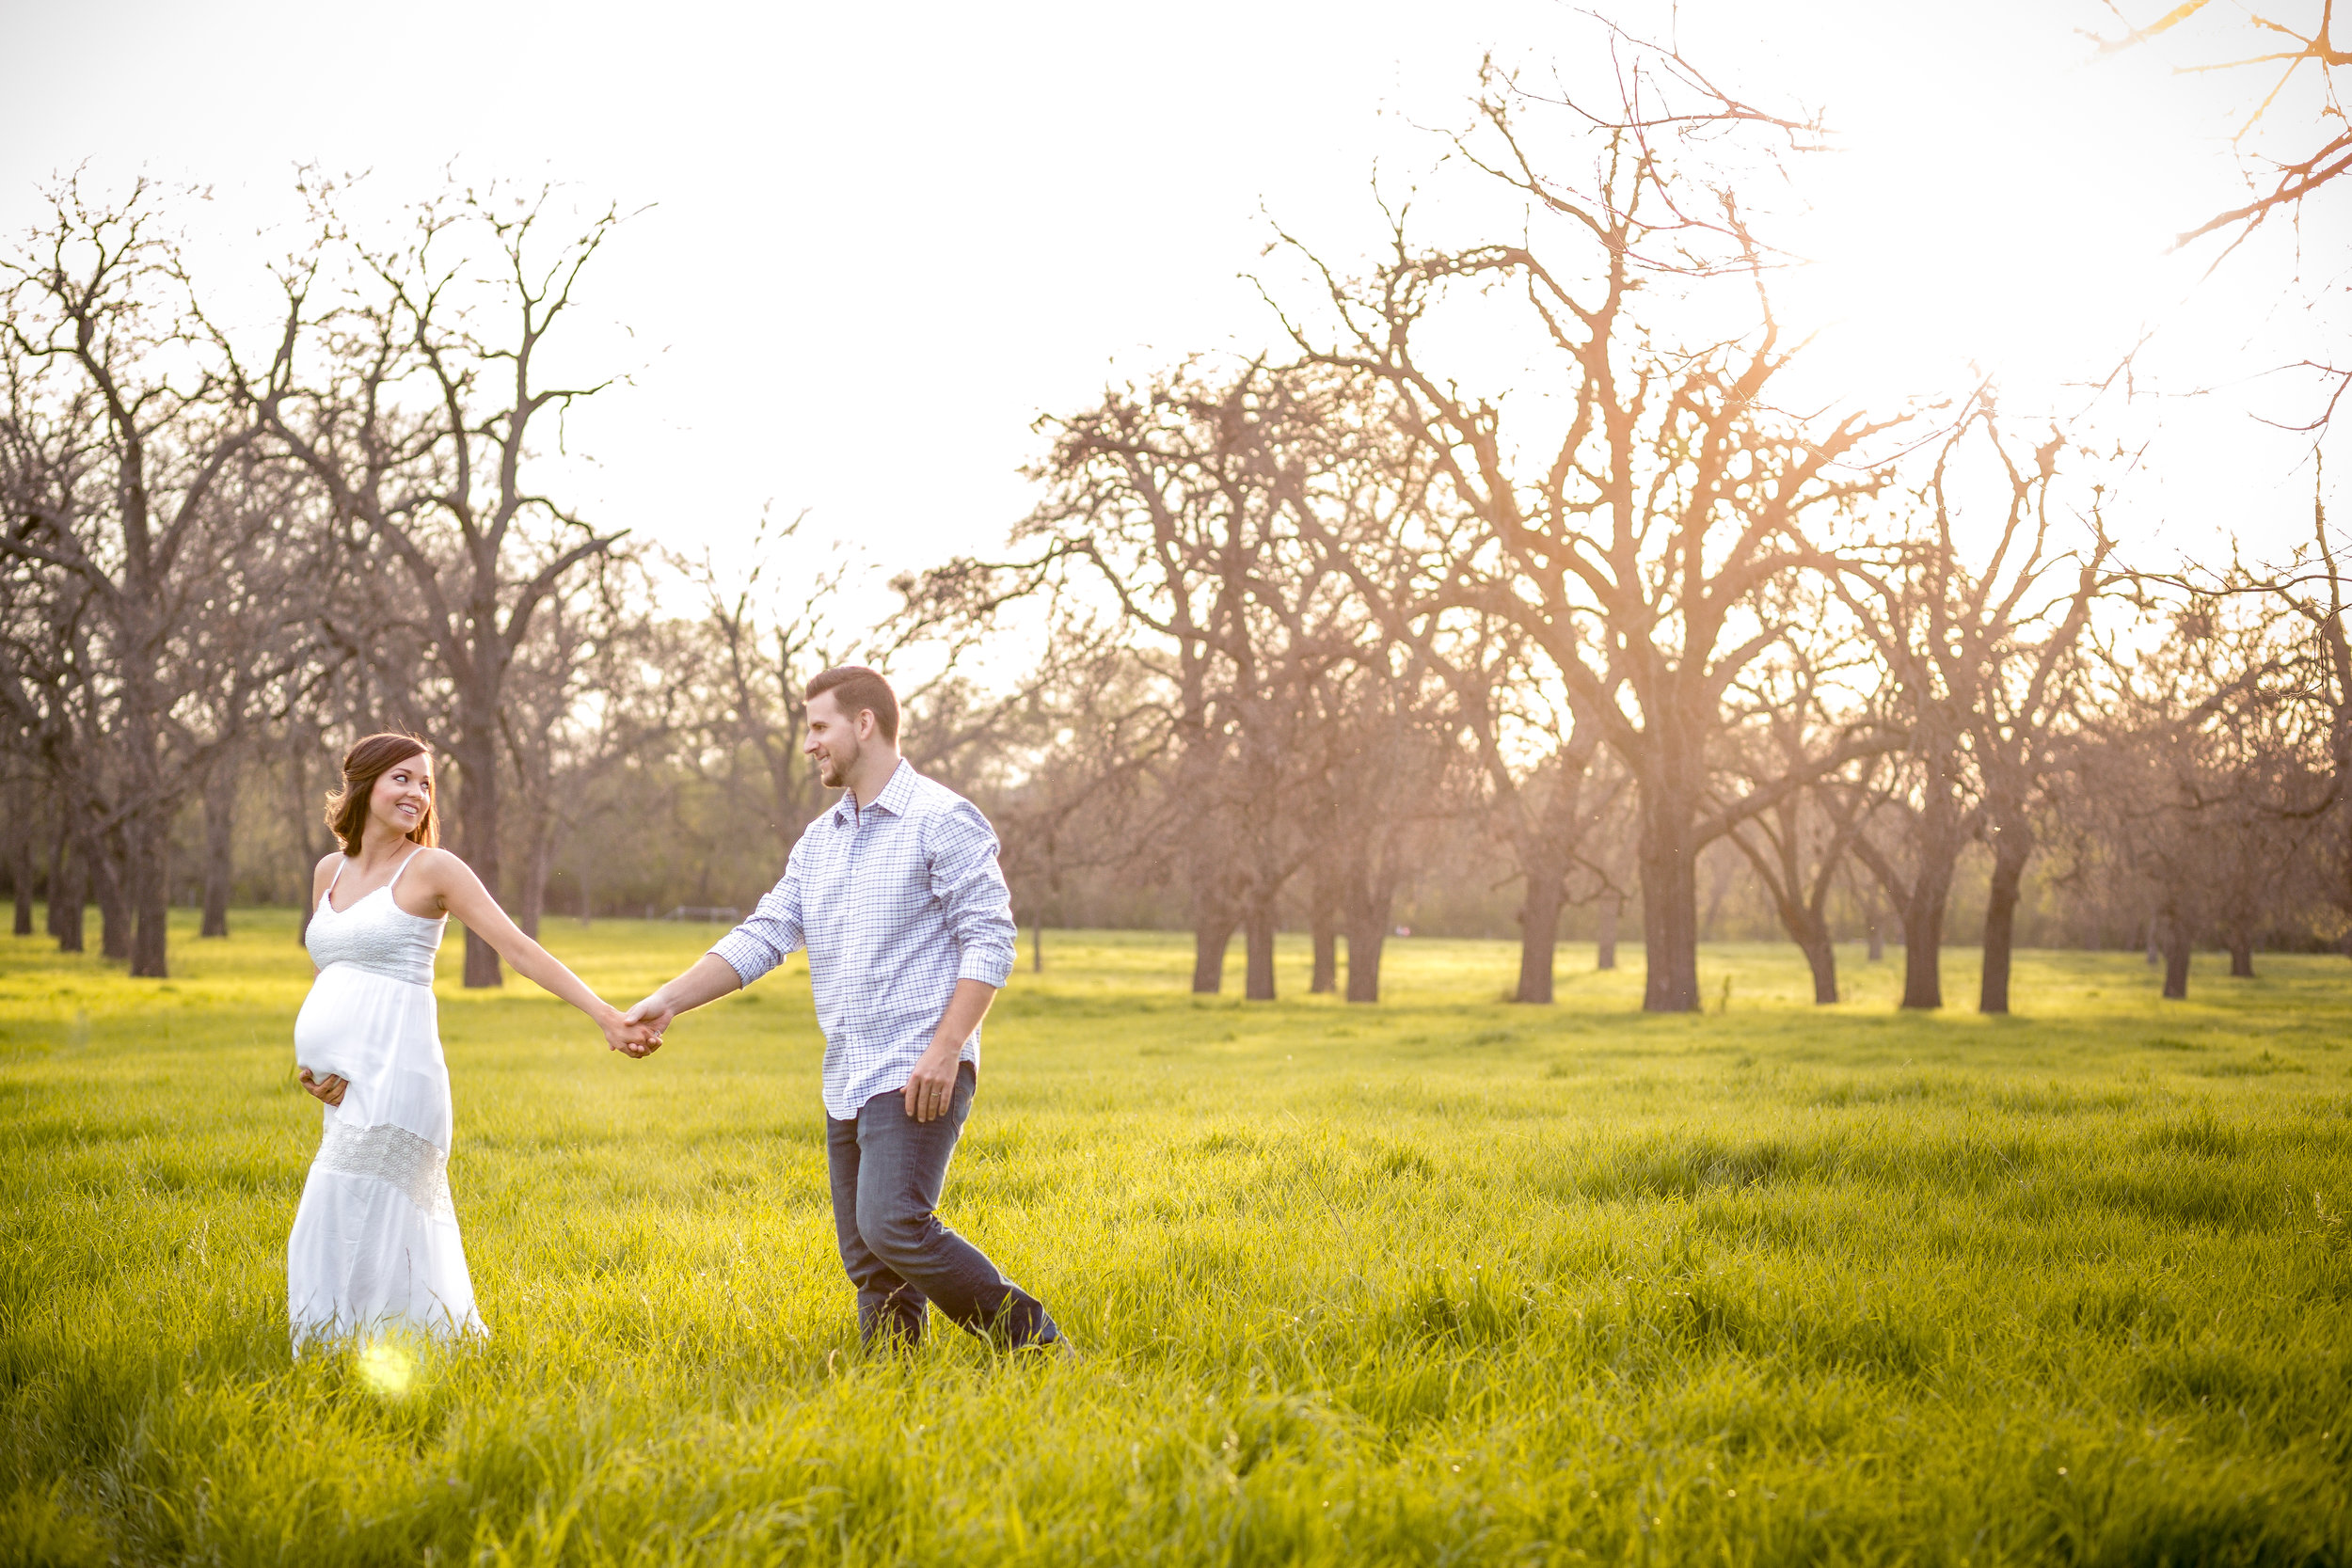 Maternity - Capture the beauty of pregnancy at a stunning location in Dallas/Fort Worth